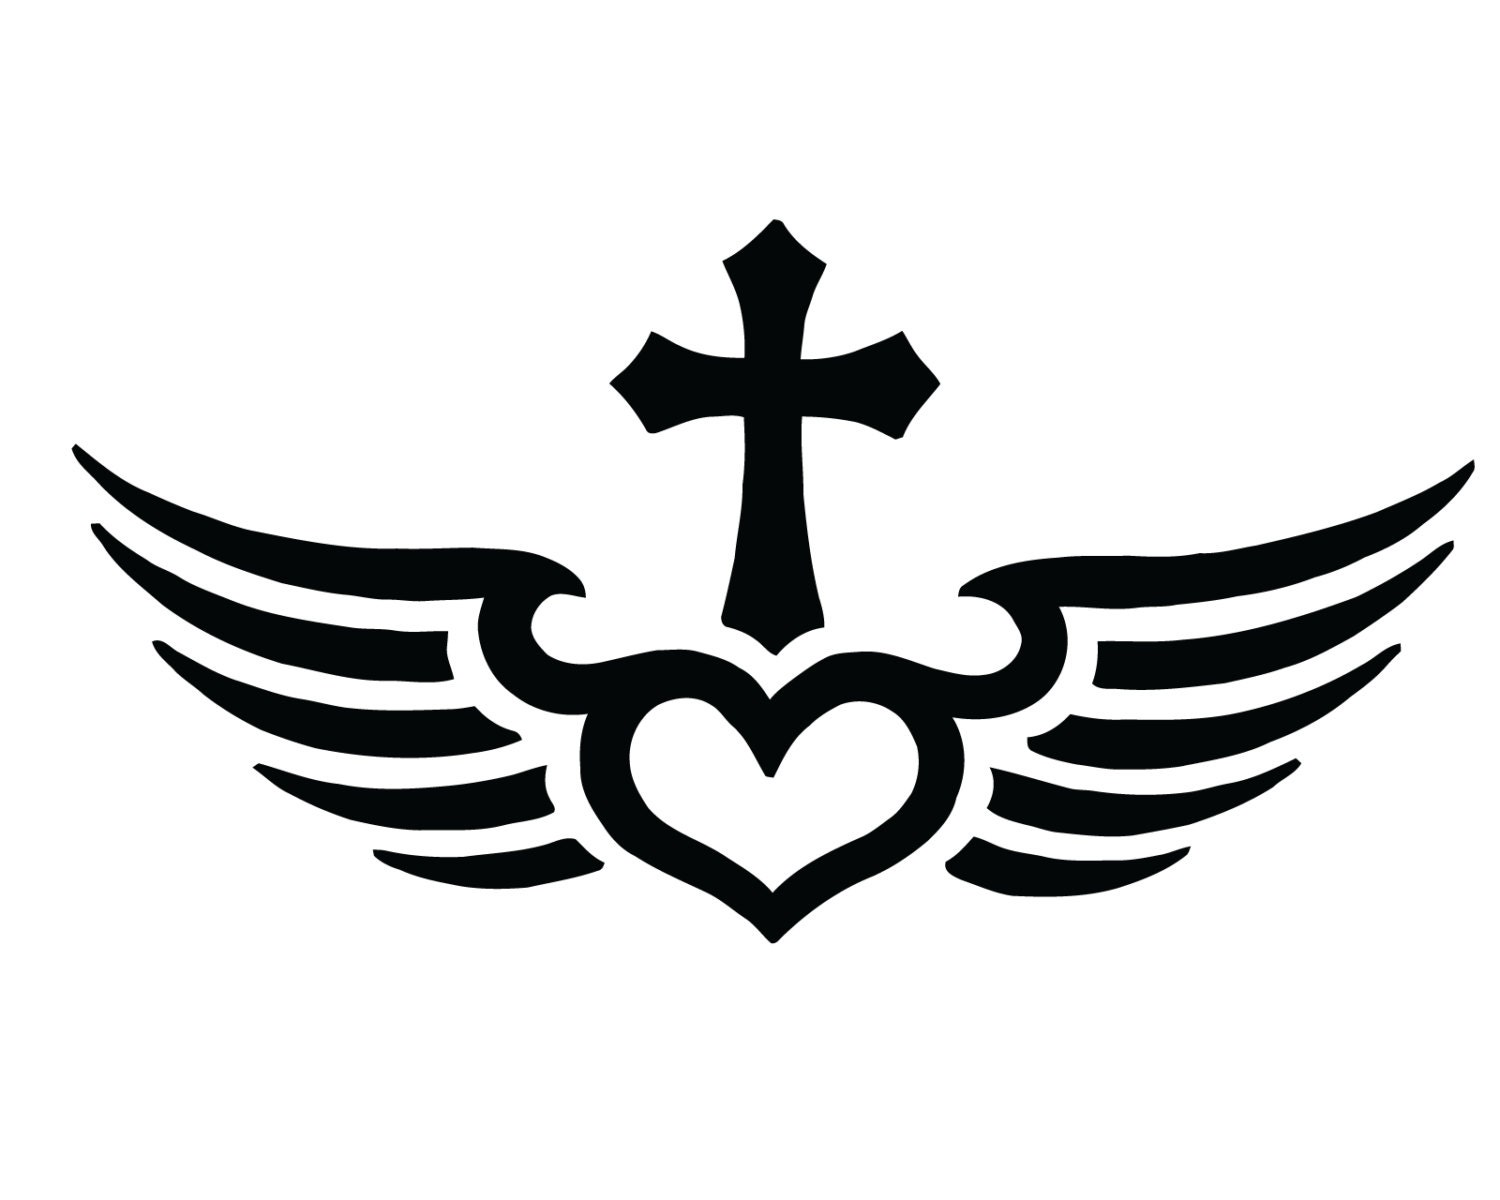 Fly with christ cross decal christian jesus cross heart etsy